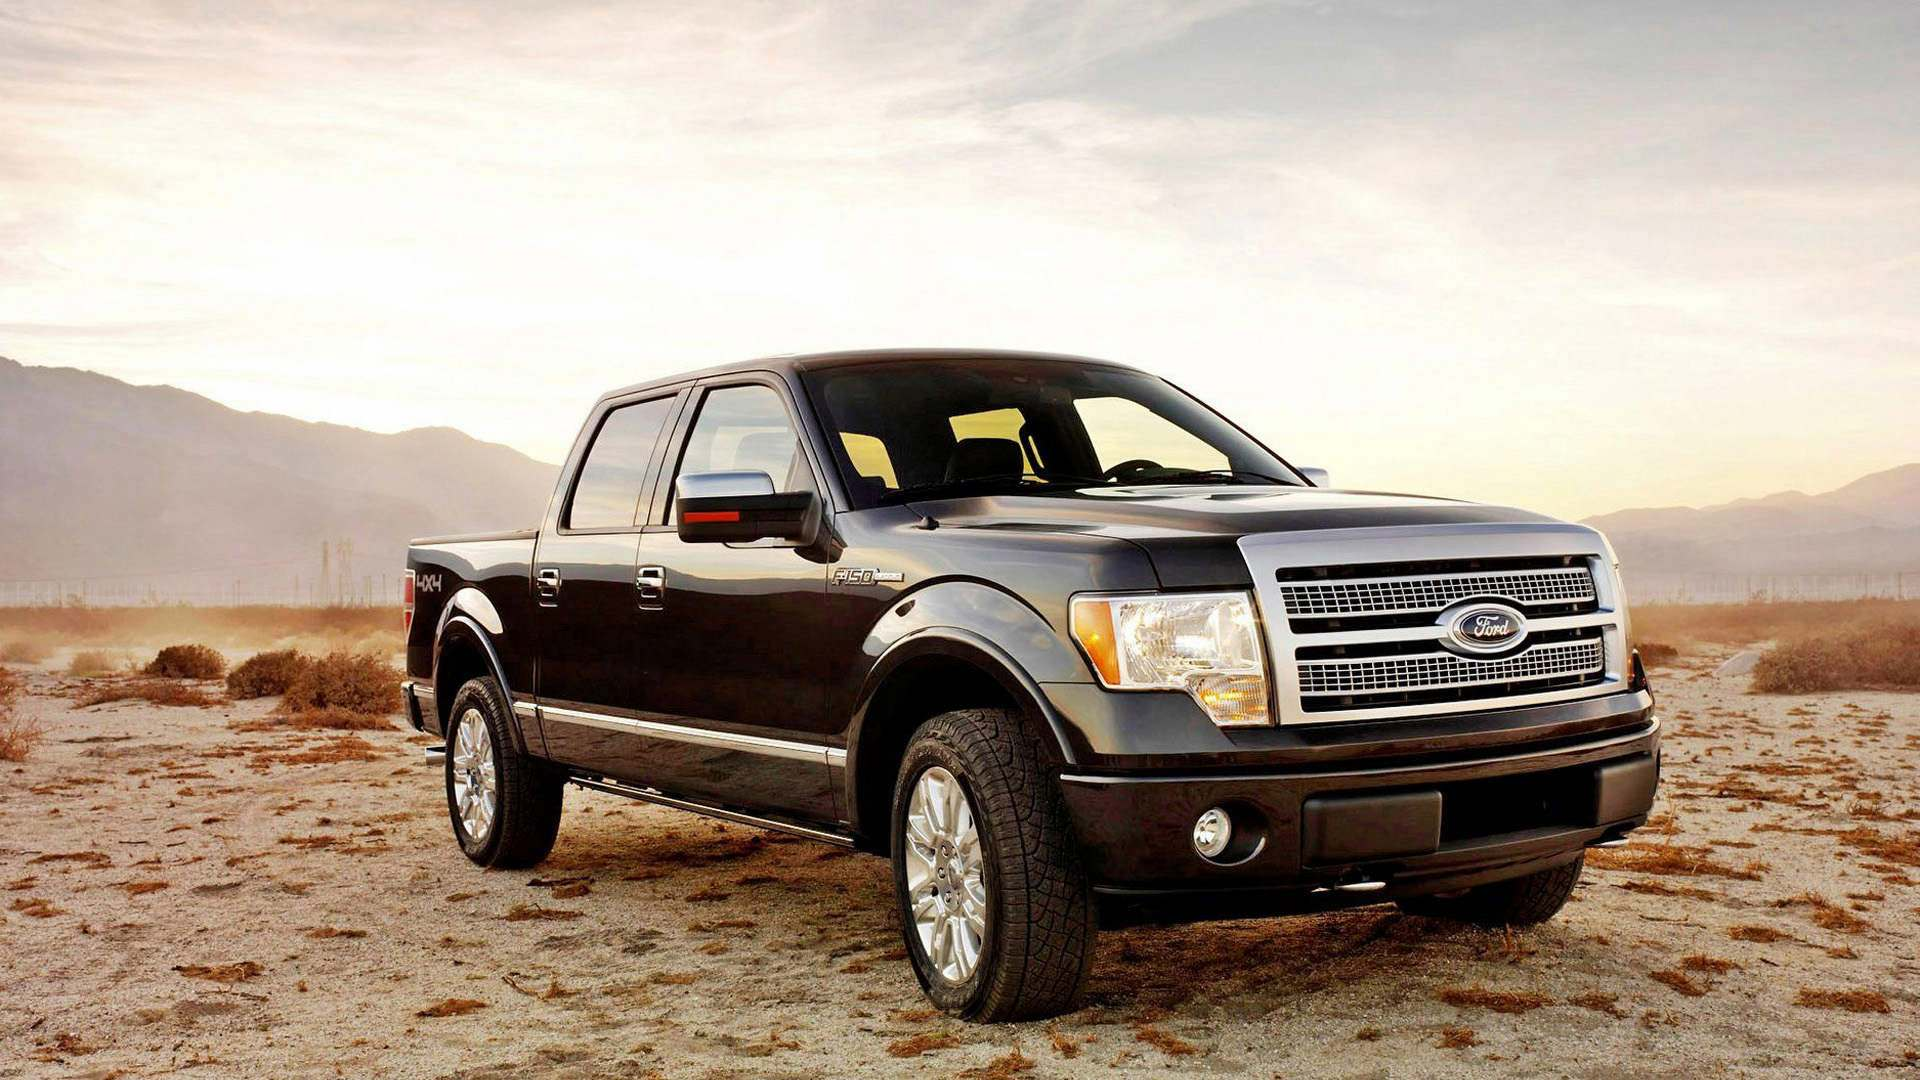 Ford Cars Hd Wallpapers Wallpaper World